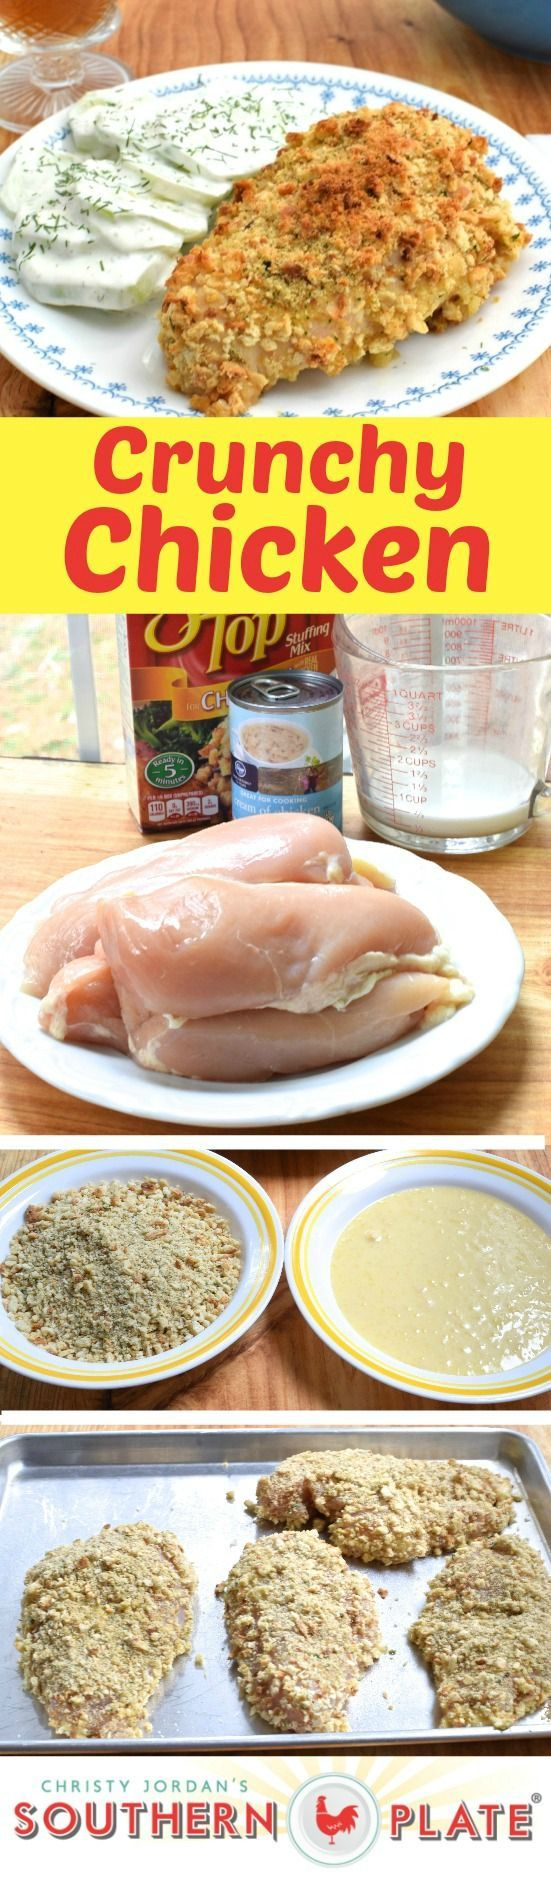 Easy Recipe For Crunchy and Flavorful Boneless Skinless Chicken Breasts! #easy #recipes #chicken #maindish